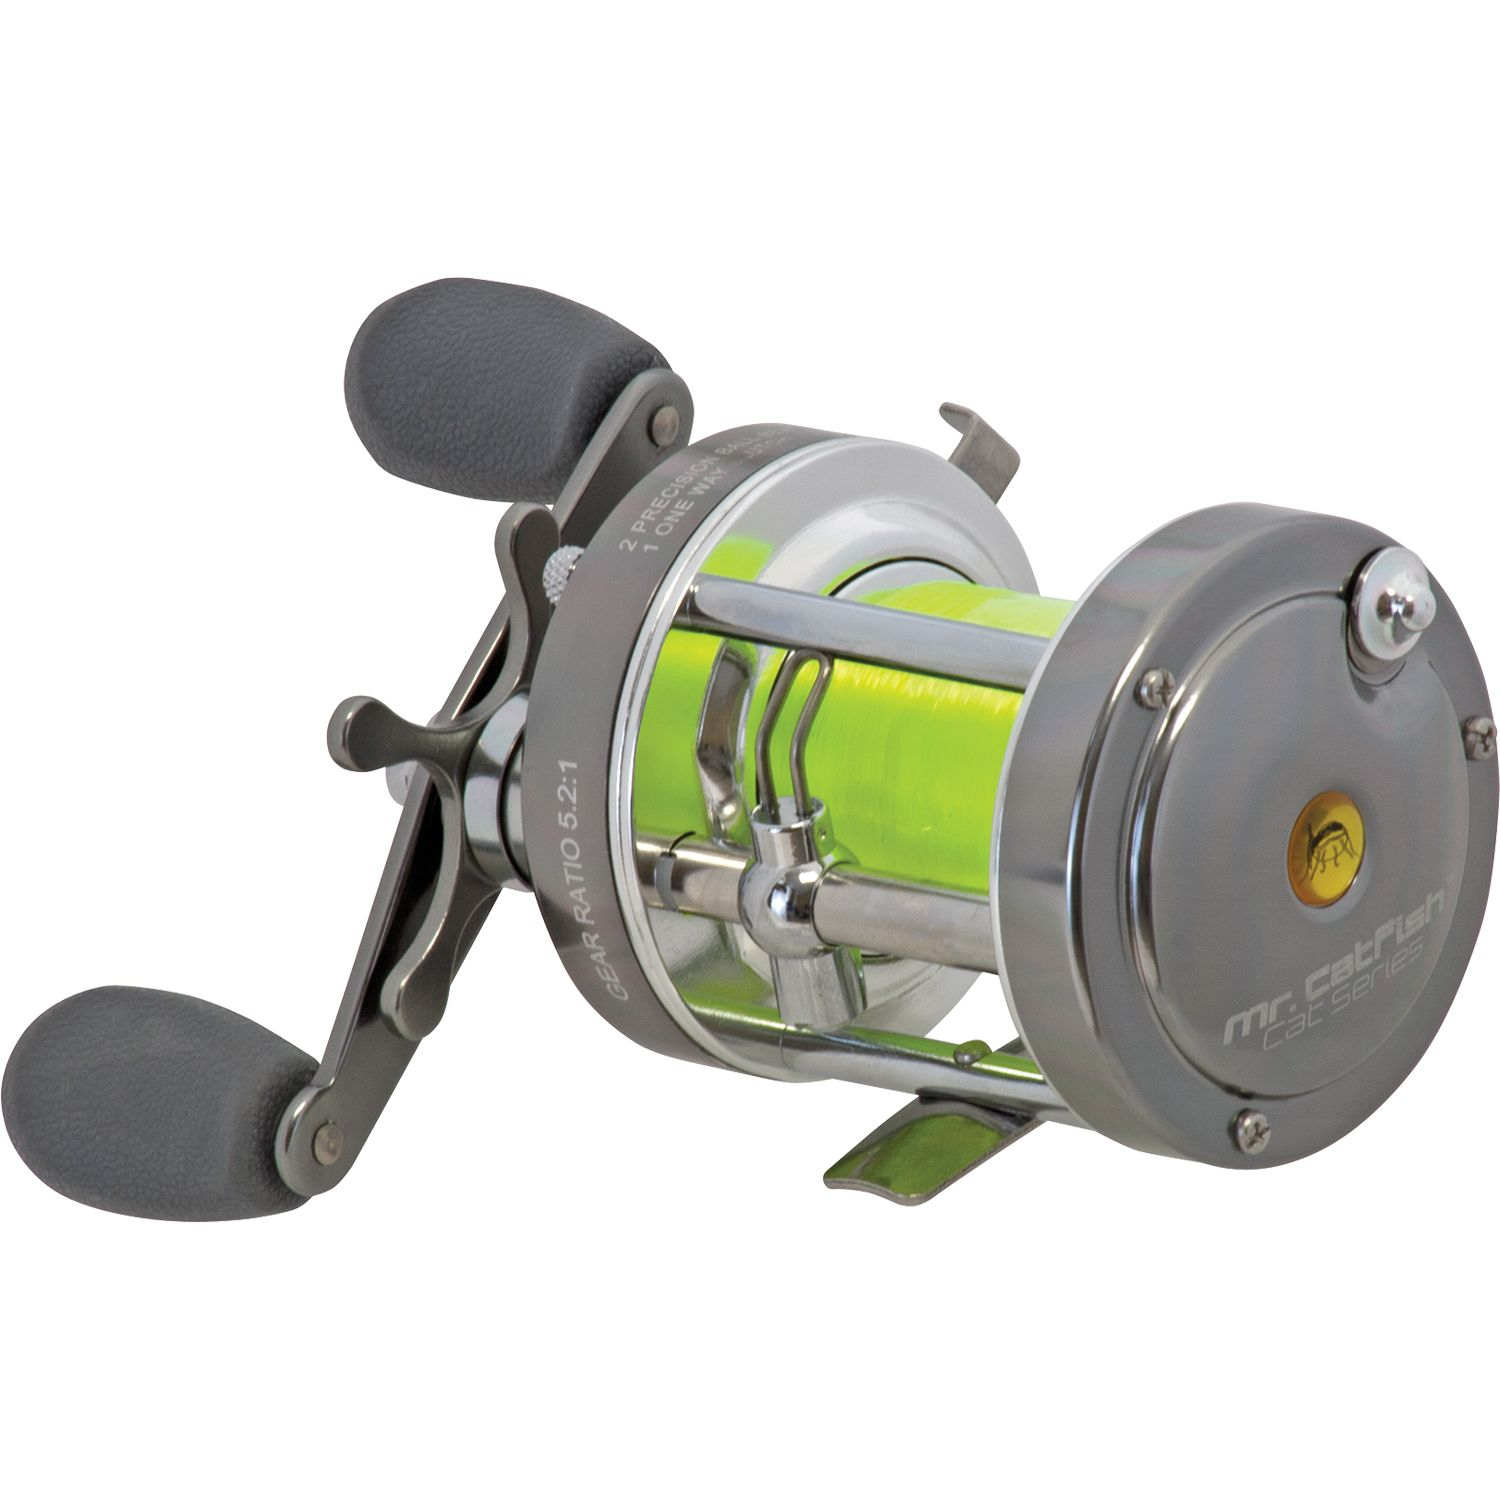 recipe: catfish reels with bait clicker [12]